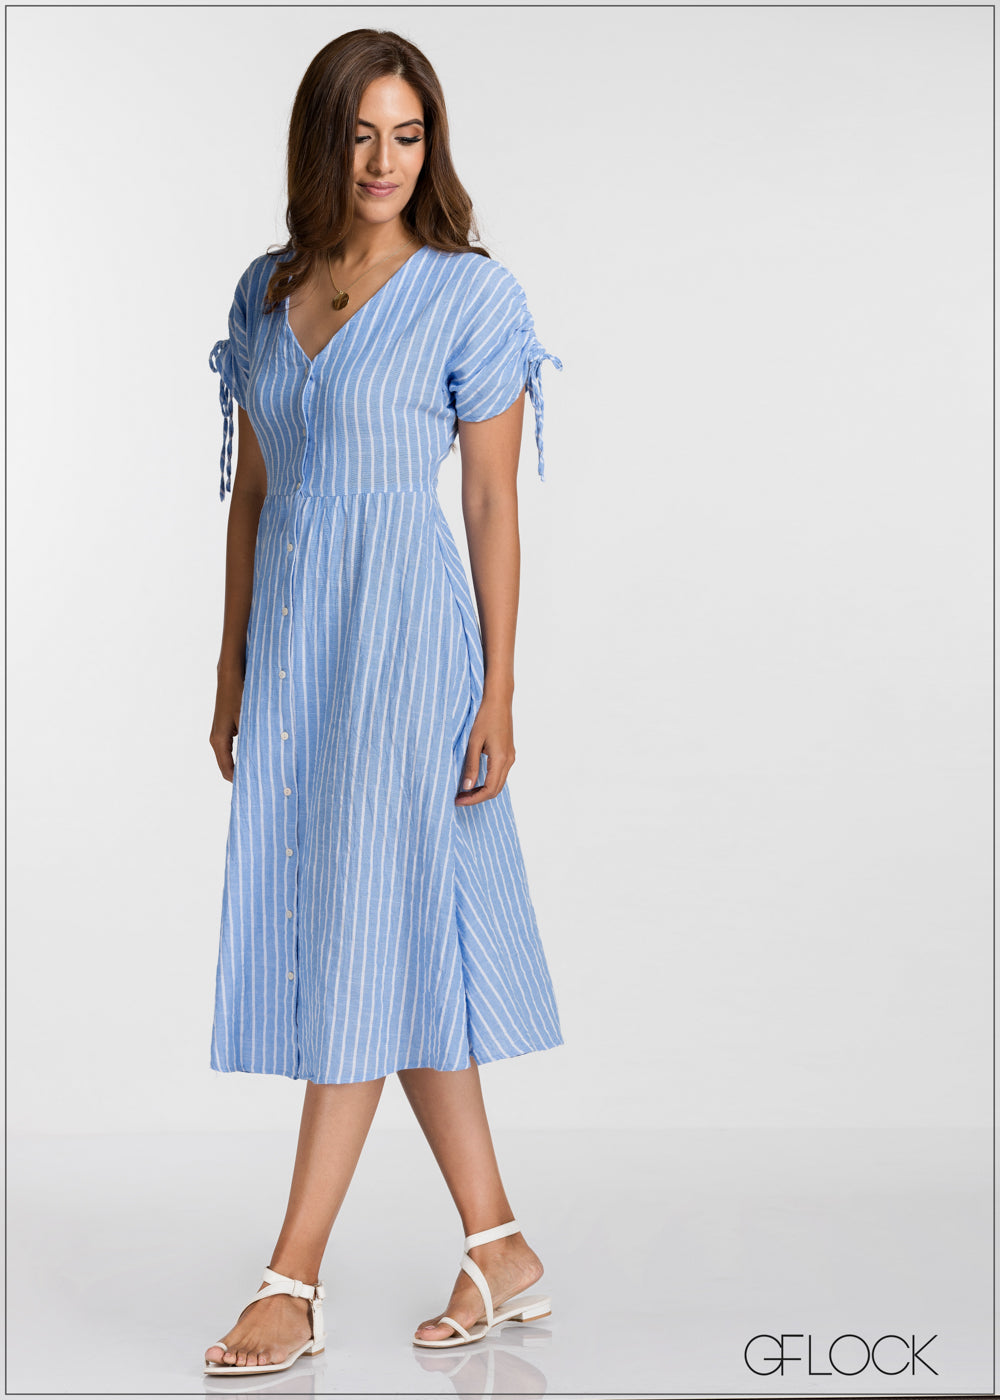 Ruched Tie Up Sleeve Dress